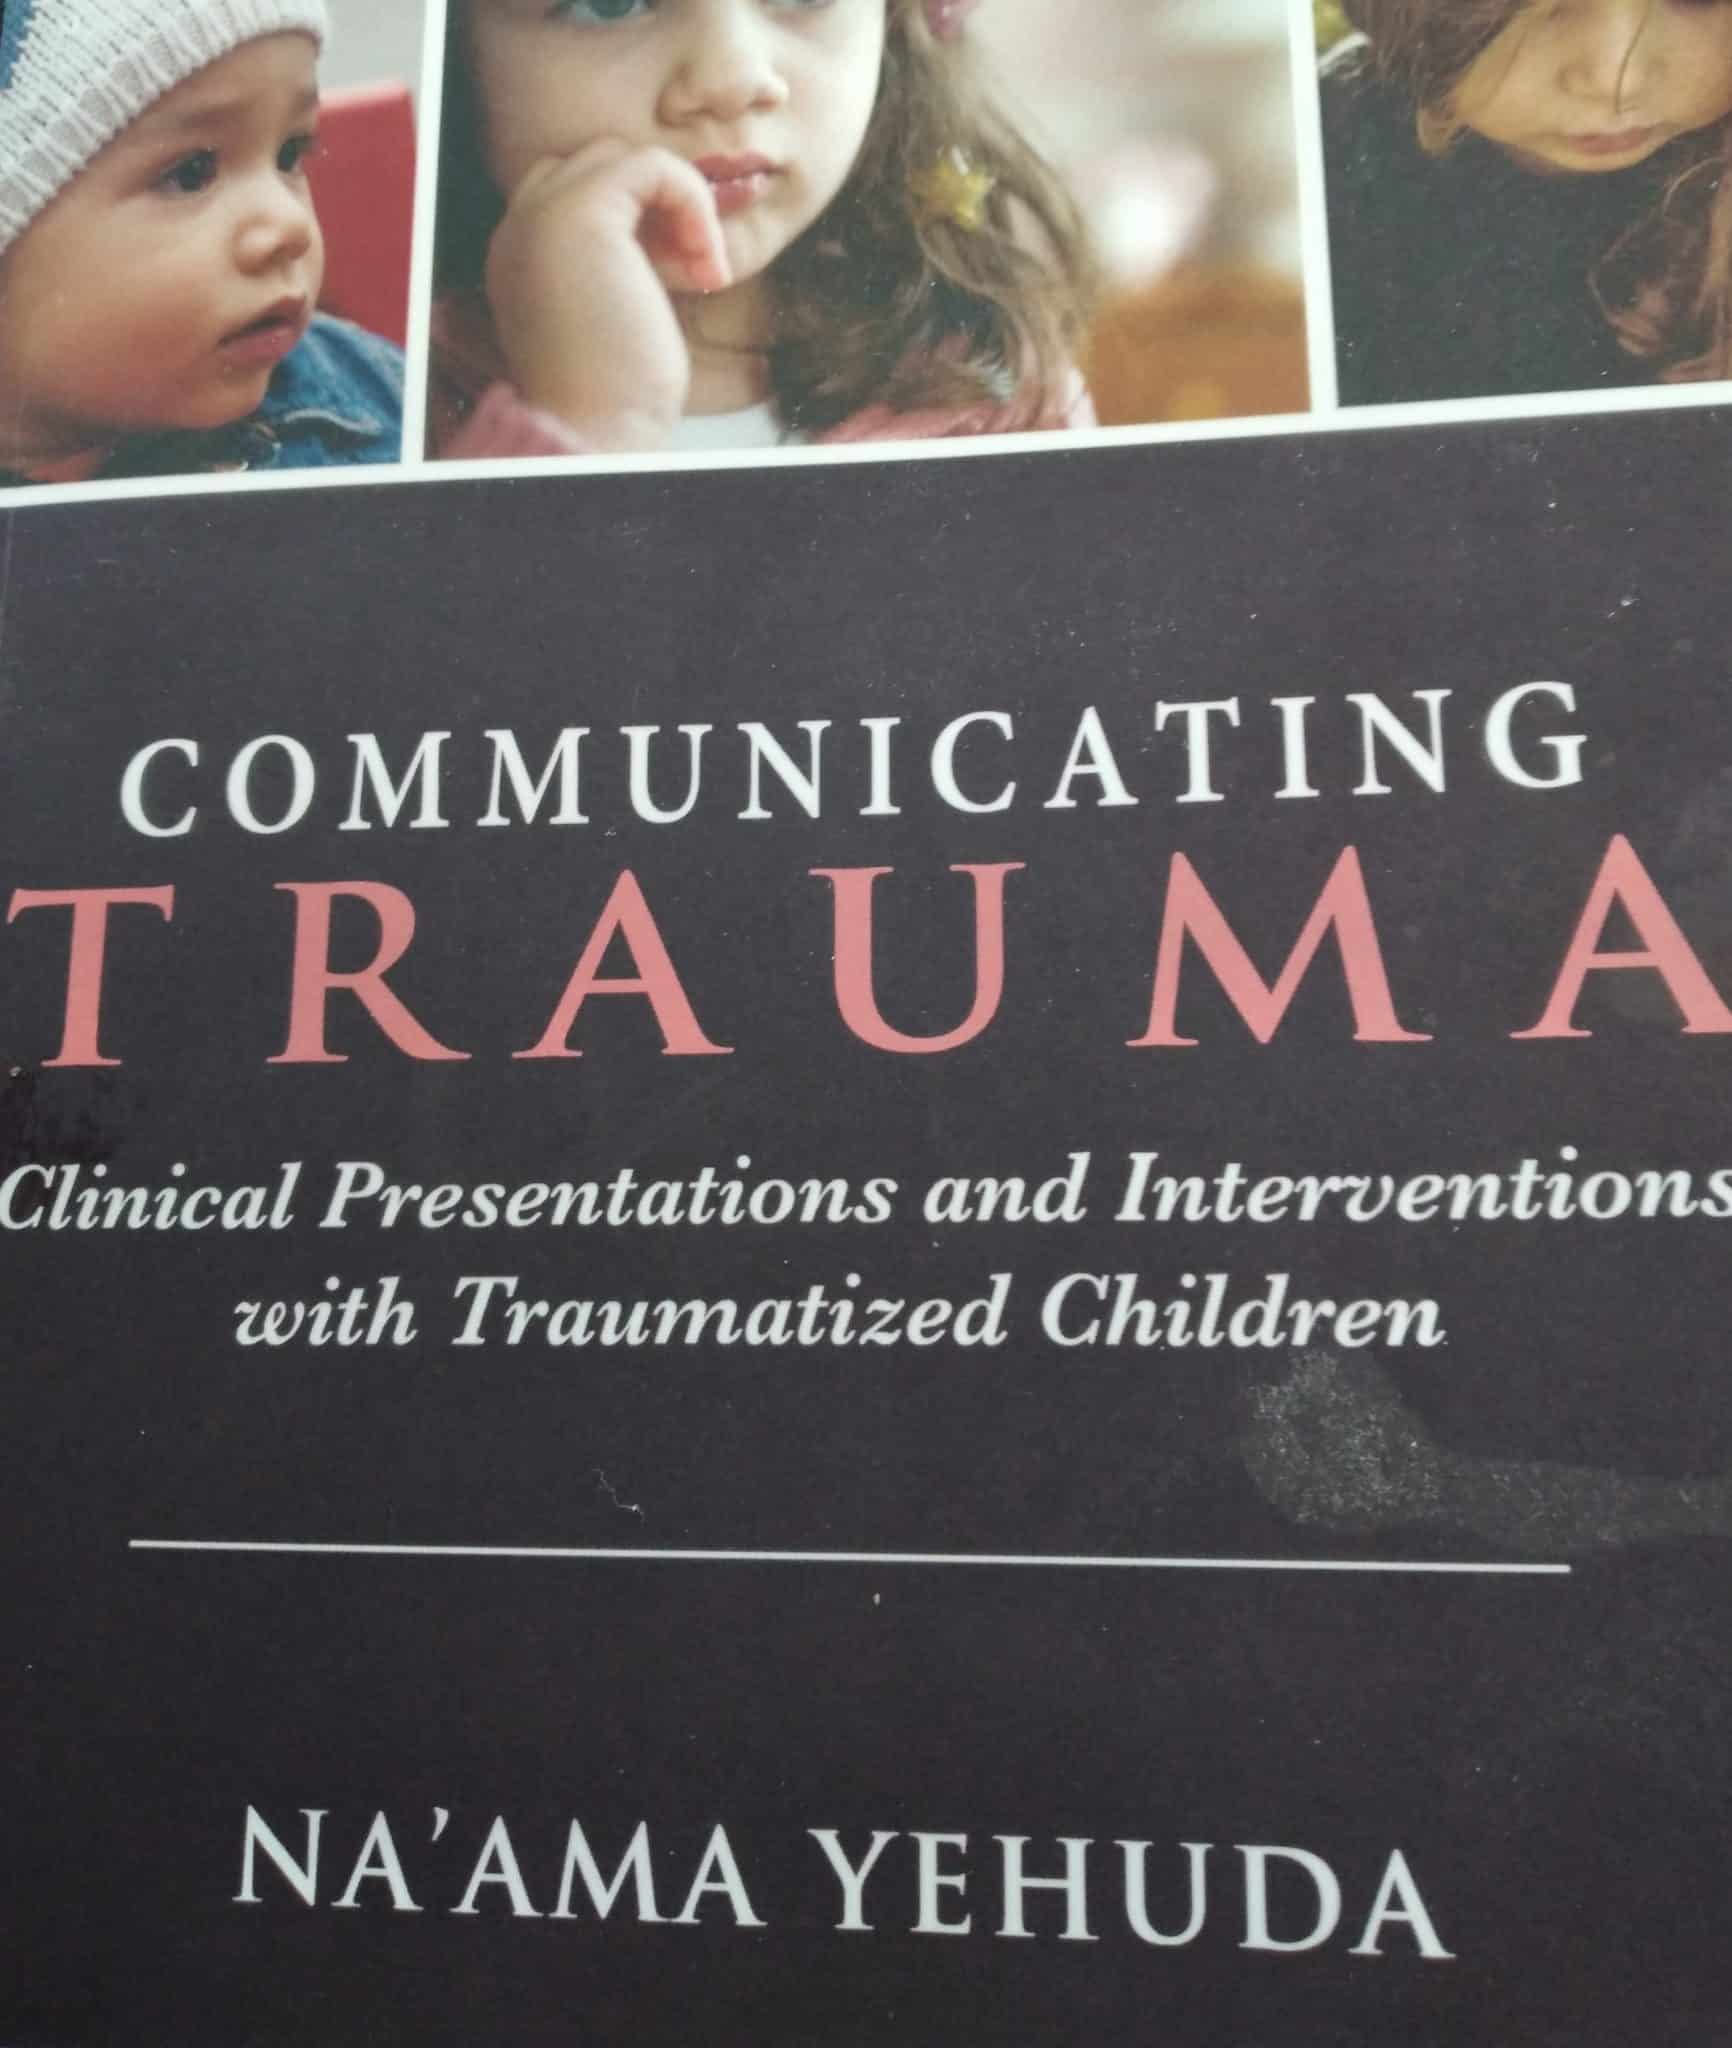 Communicating Trauma. Clinical Presentations And Interventions With Traumatized Children